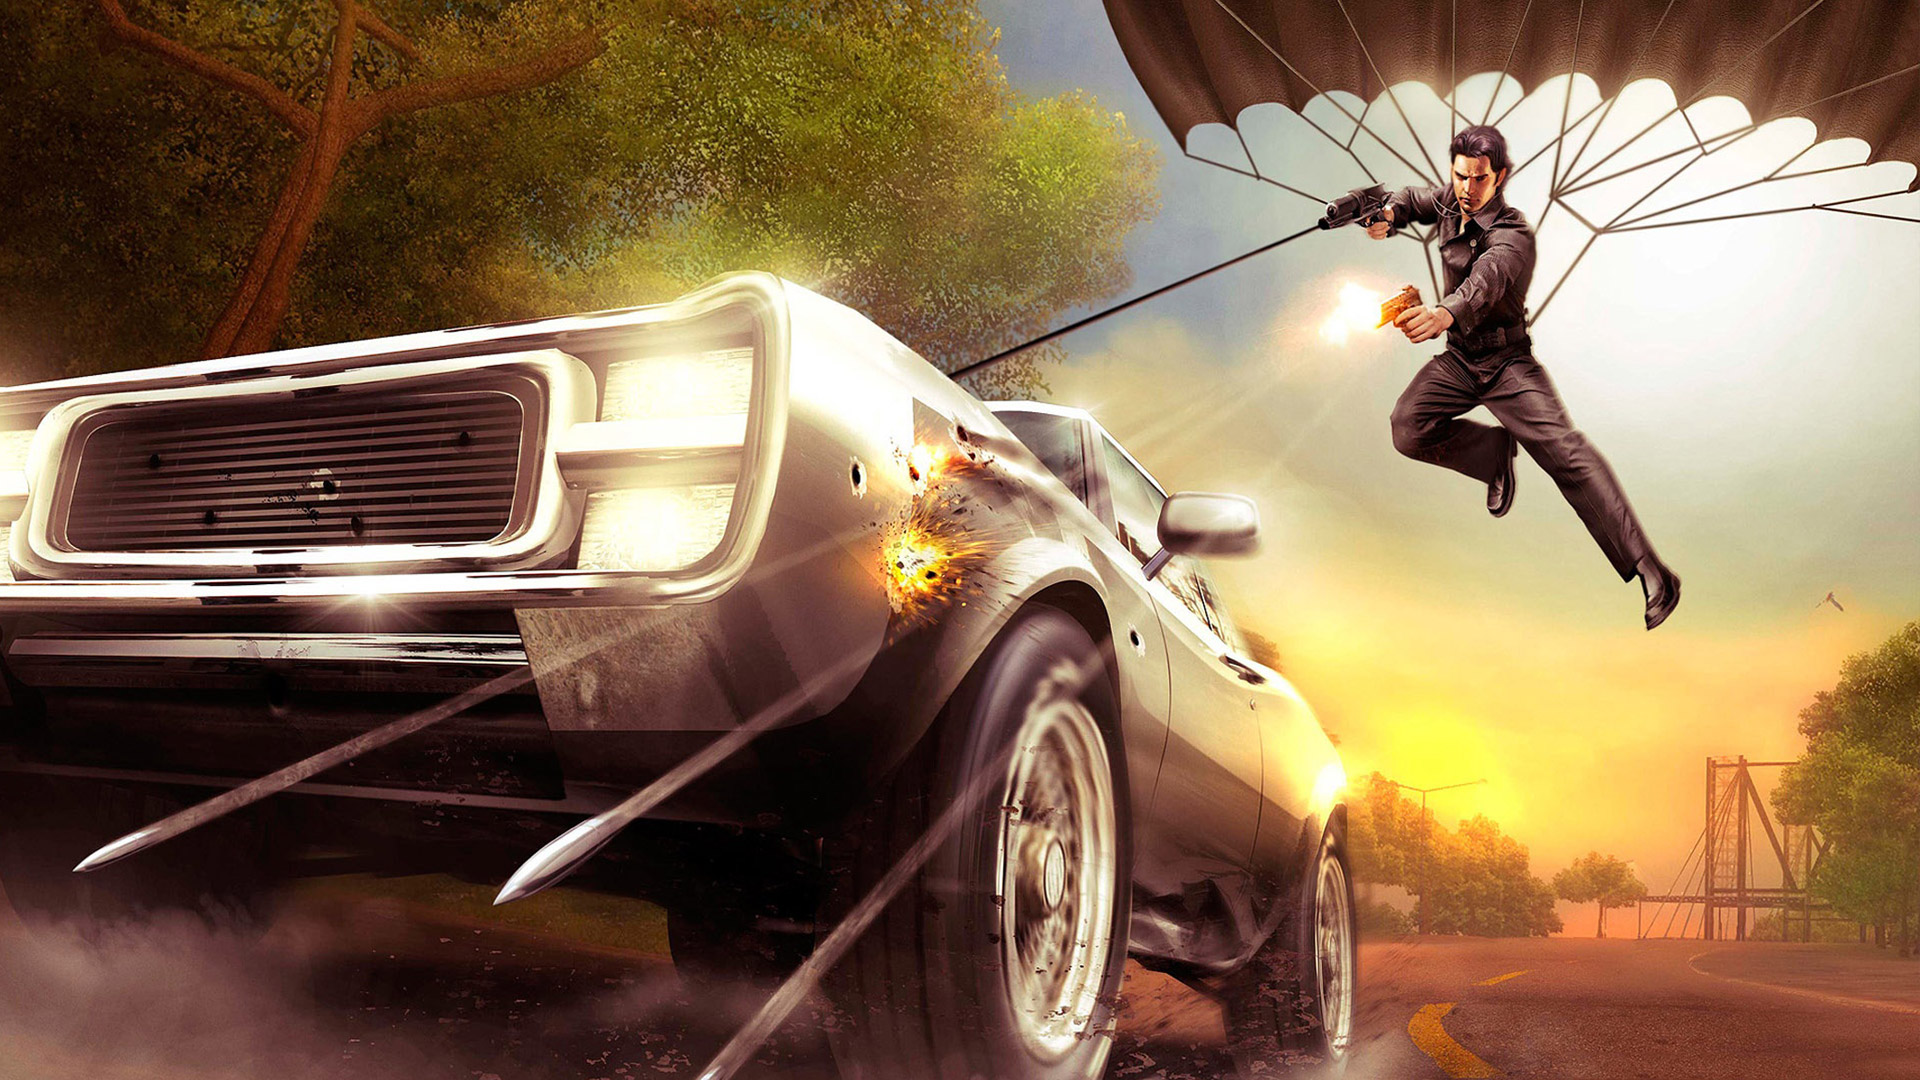 Free Just Cause Wallpaper in 1920x1080